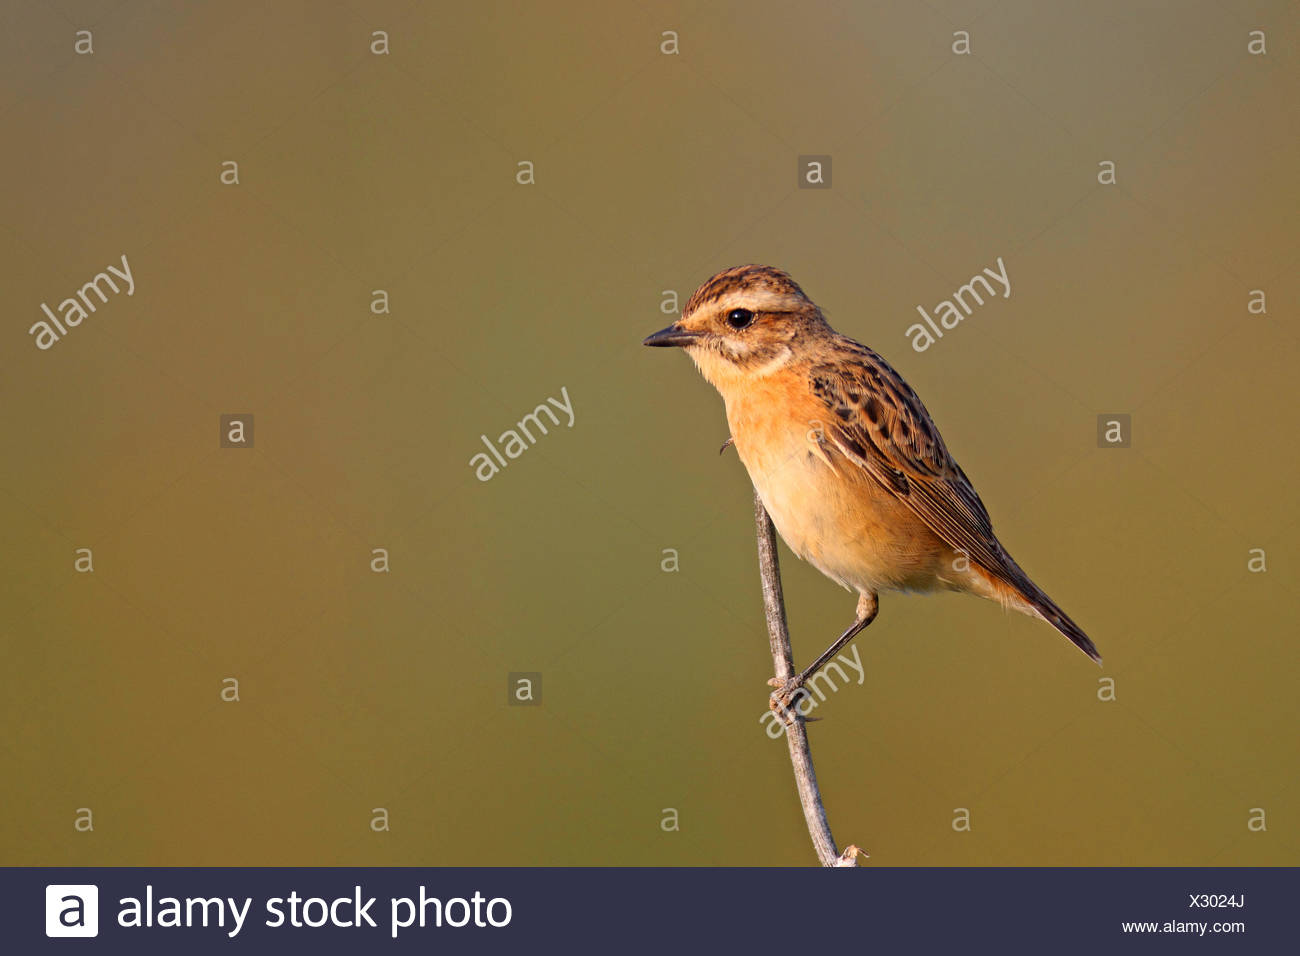 whinchat (Saxicola rubetra), female sitting at a stalk, Greece, Lesbos - Stock Image